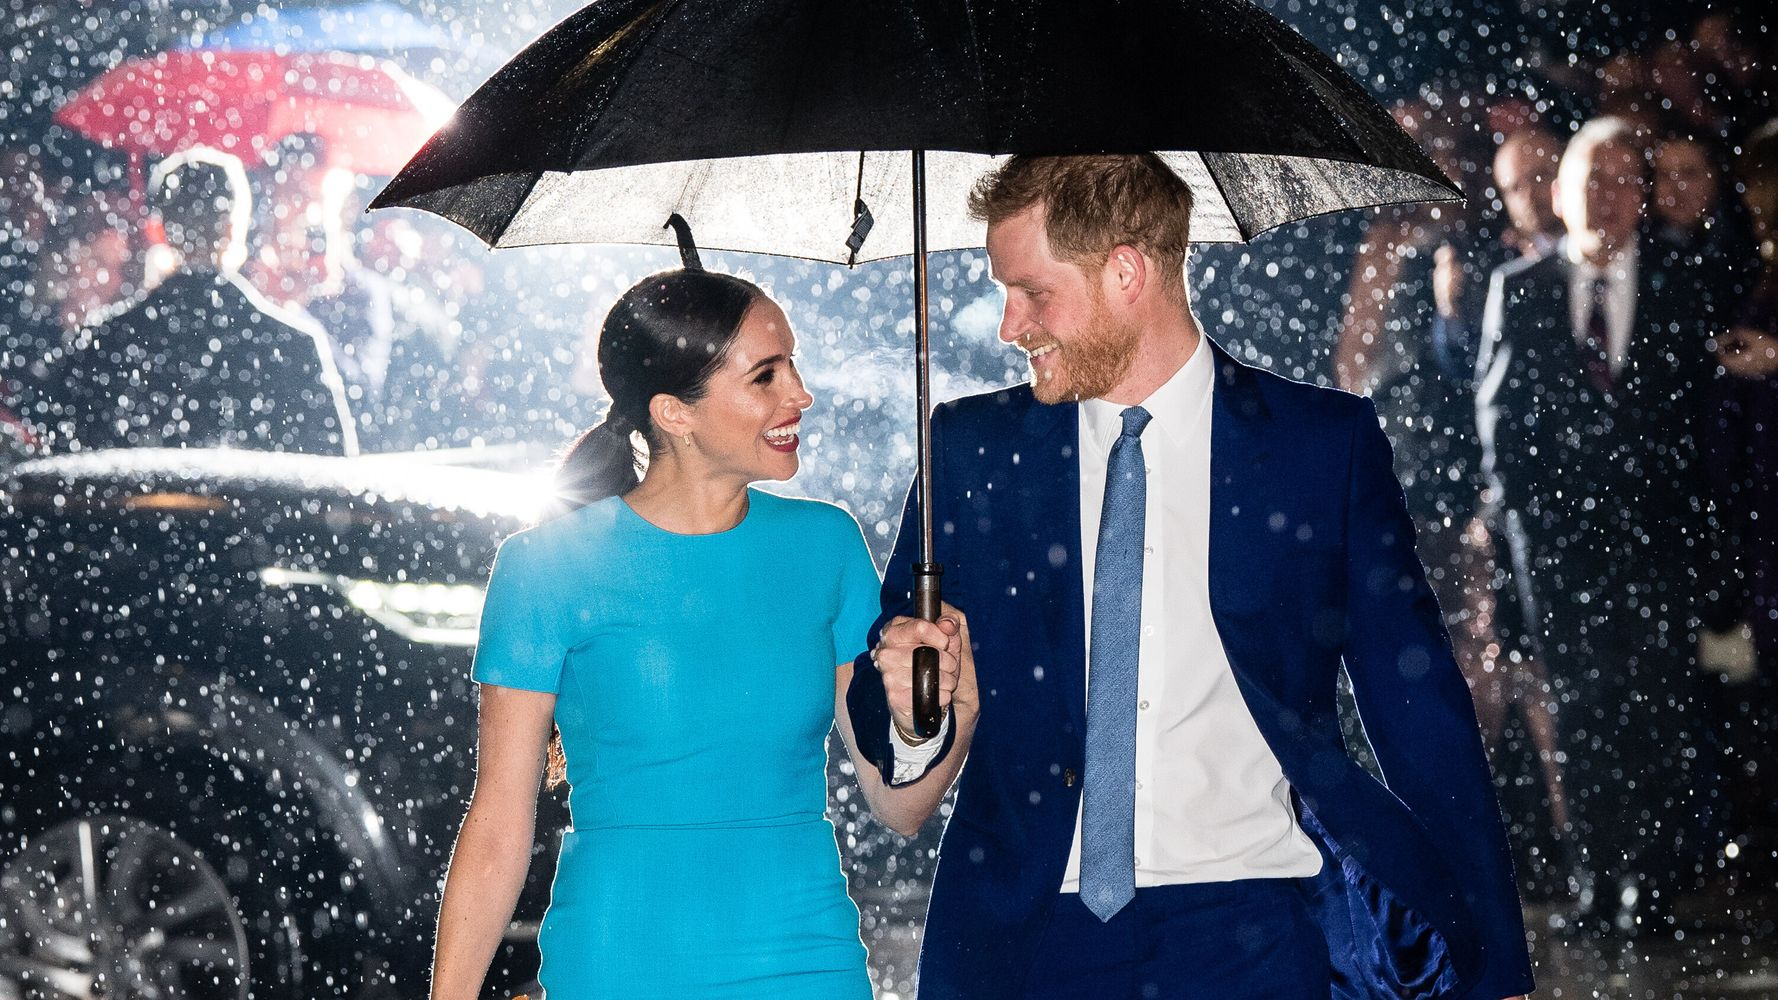 The Past Year Made It Clear Why Harry And Meghan Wanted To Leave